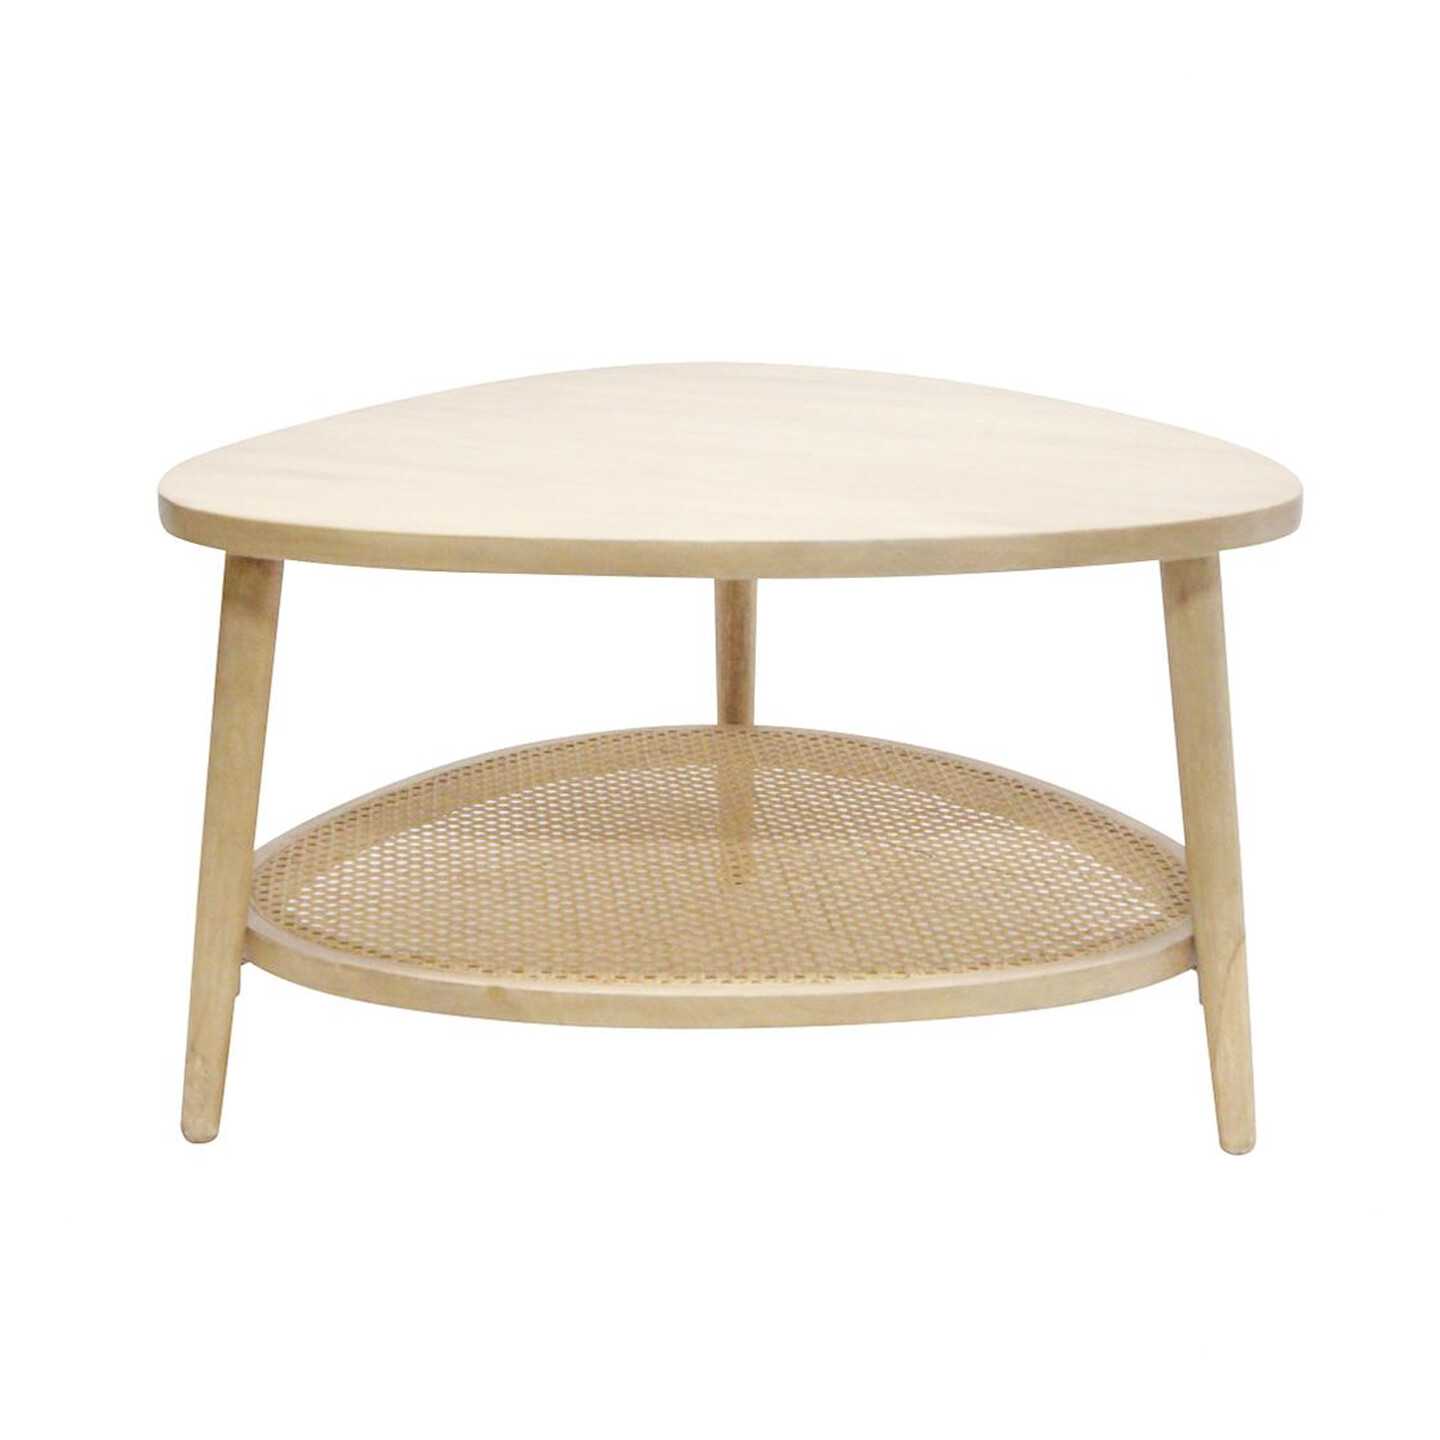 Mangowood Coffe Table with Rattan